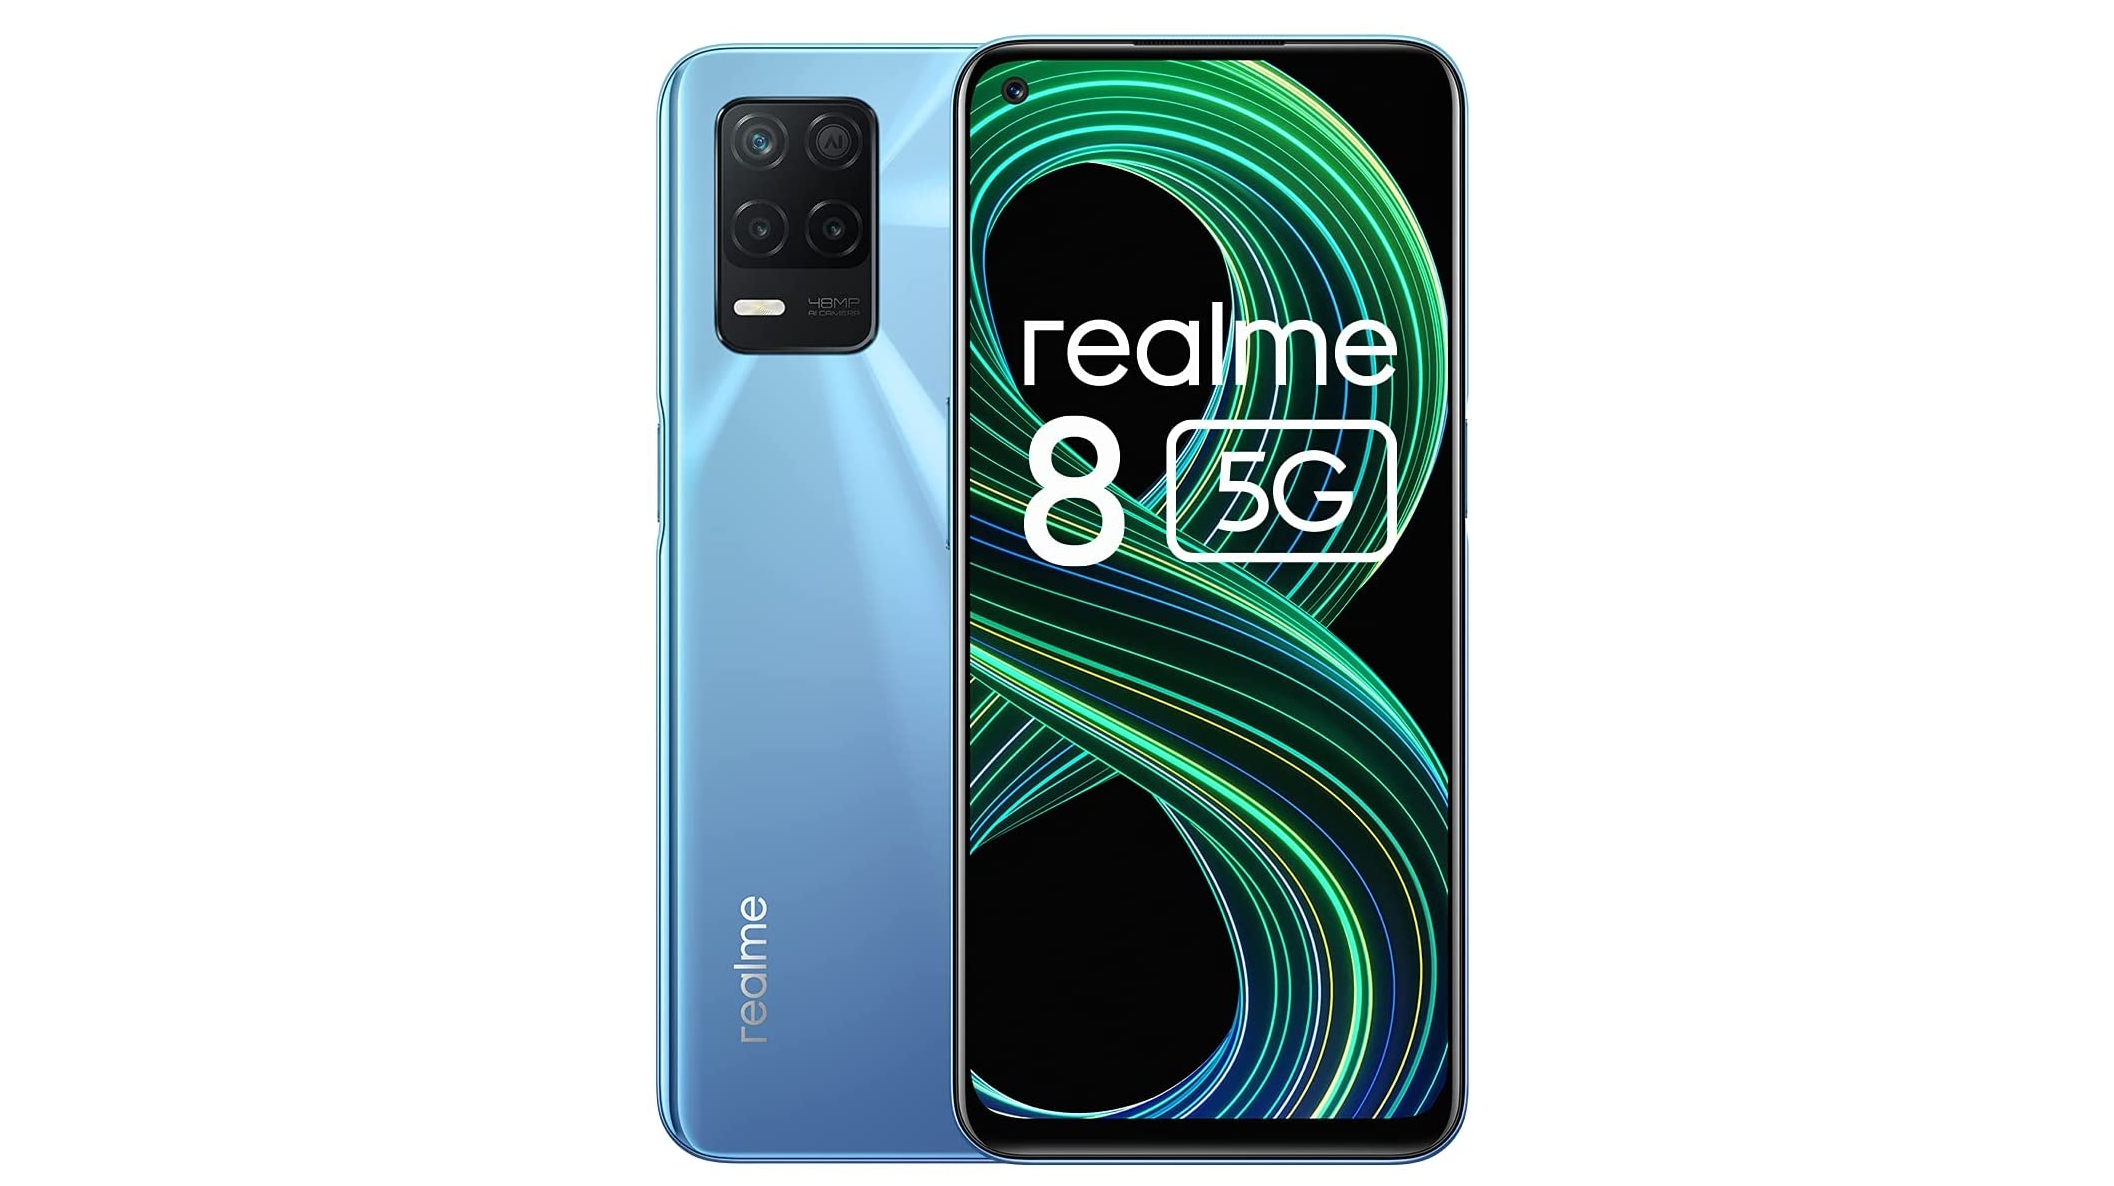 A Realme 8 5G against a white background